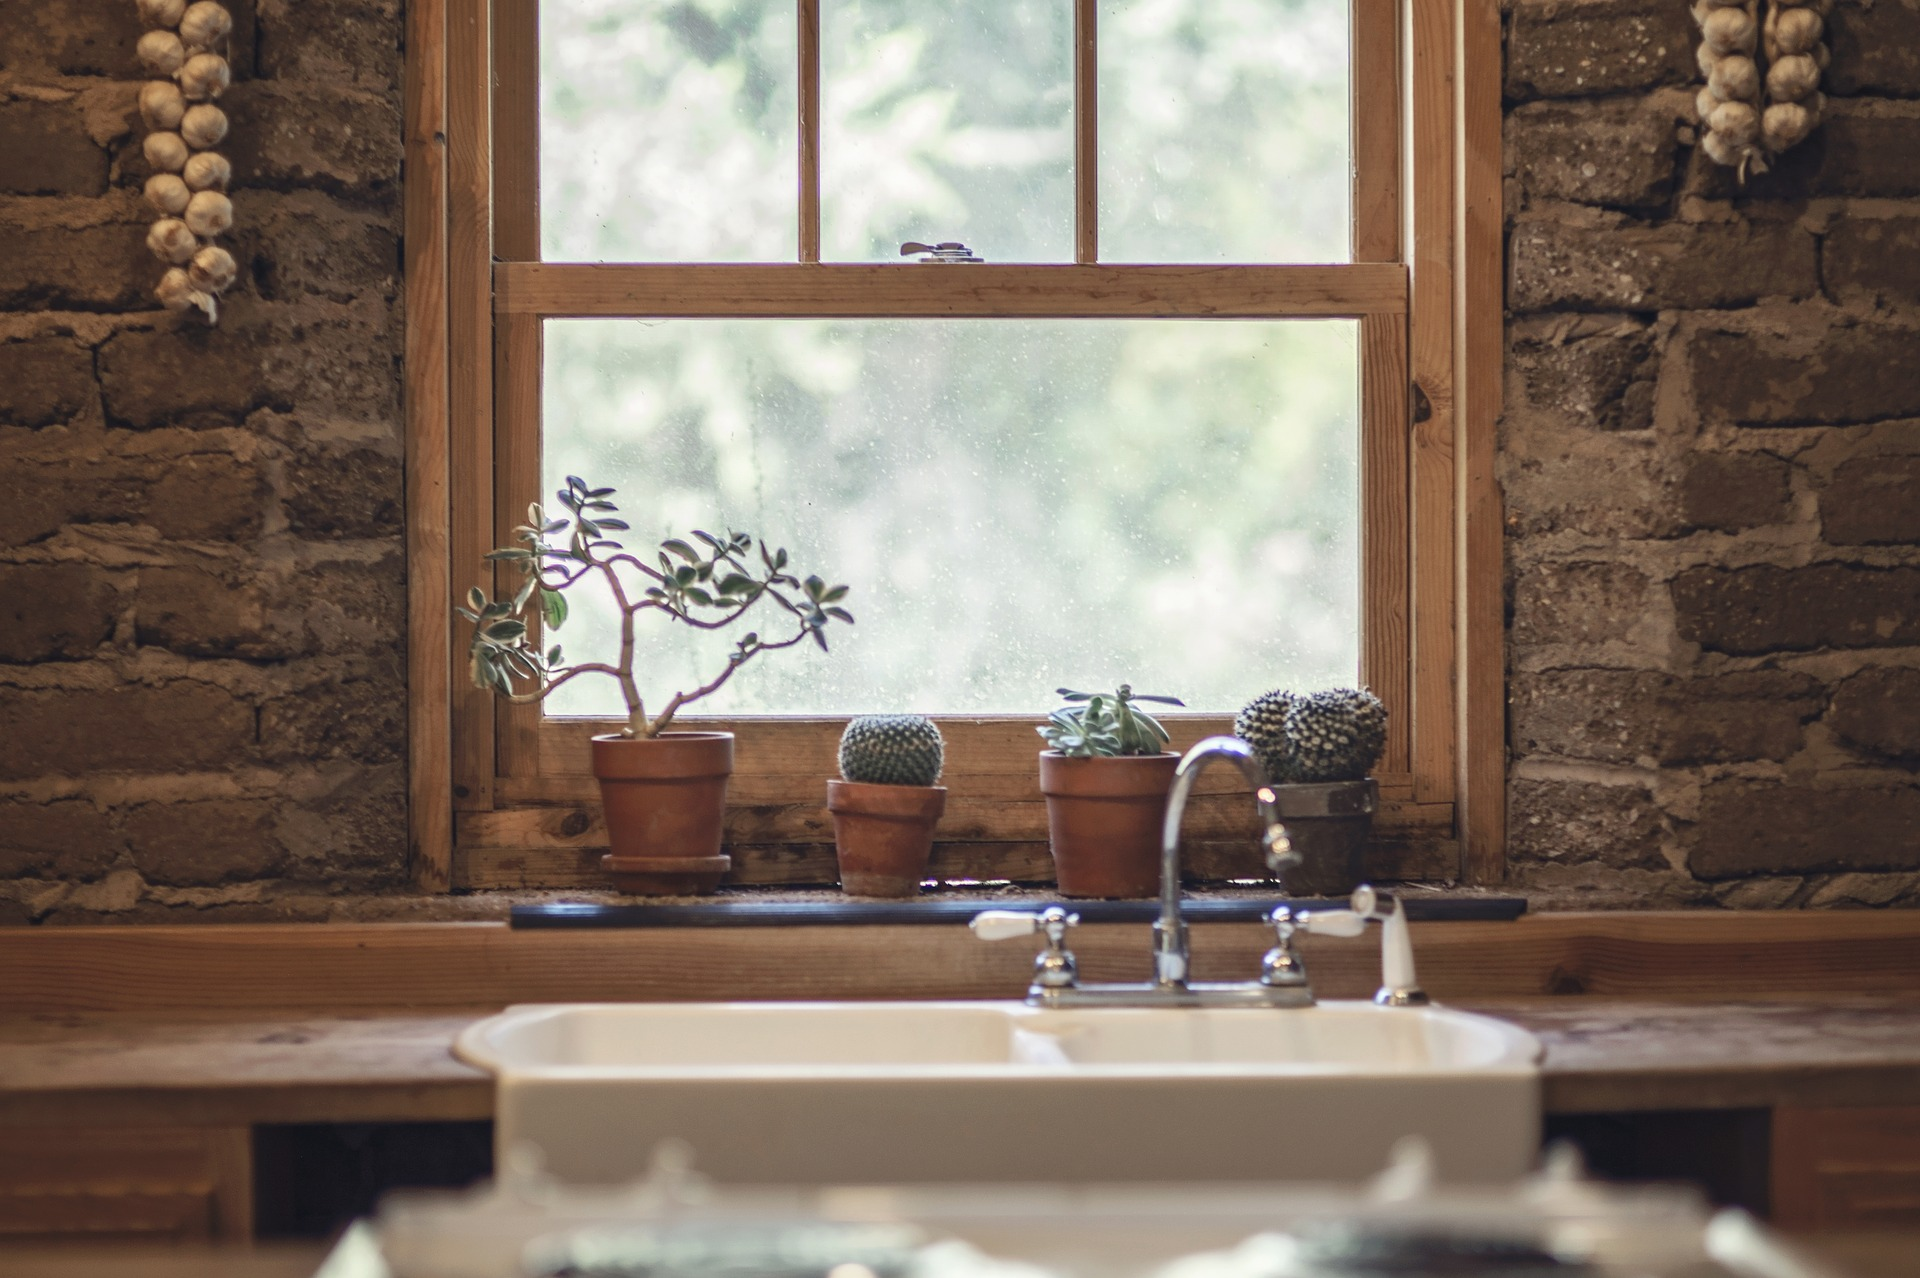 how to start minimalism, becoming a minimalist, how to downsize, downsizing tips, downsizing ideas, minimlize clutter, declutter, depression and clutter,